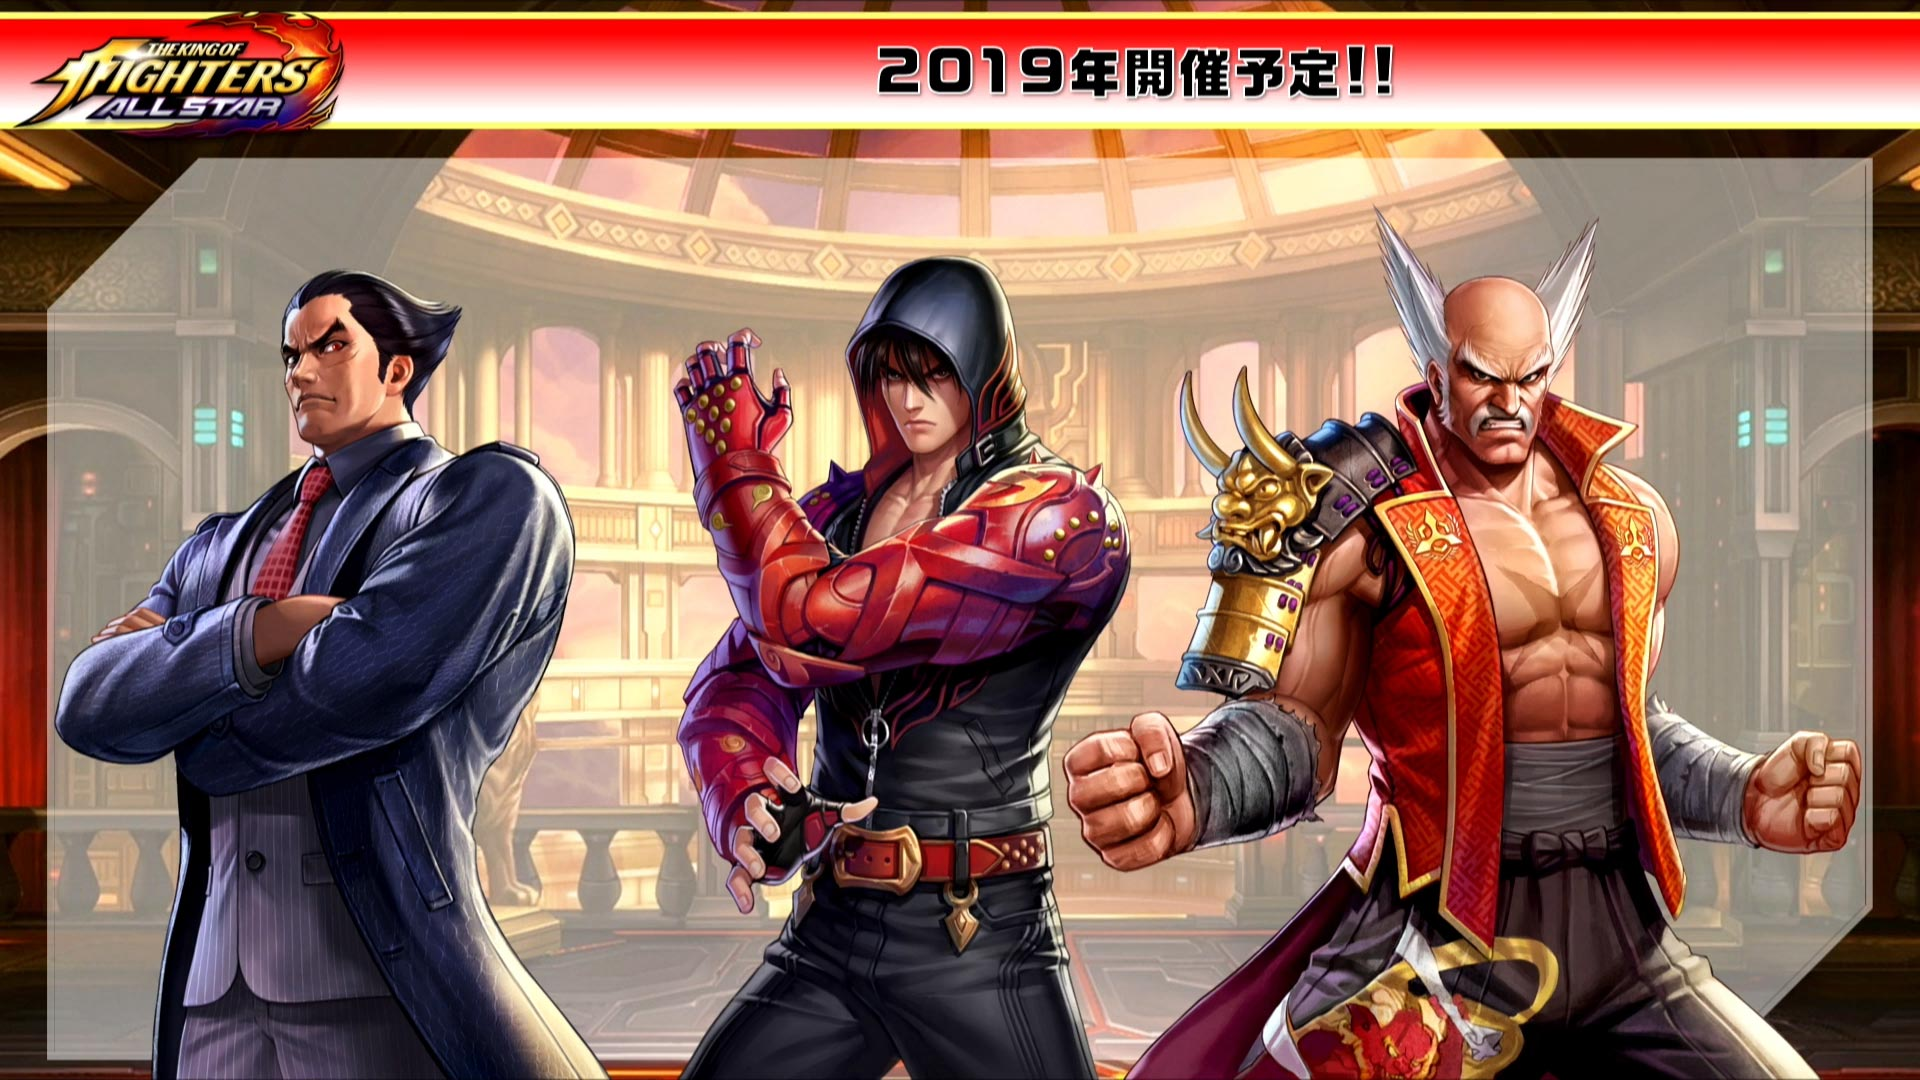 King of Fighters All Star 2 out of 3 image gallery